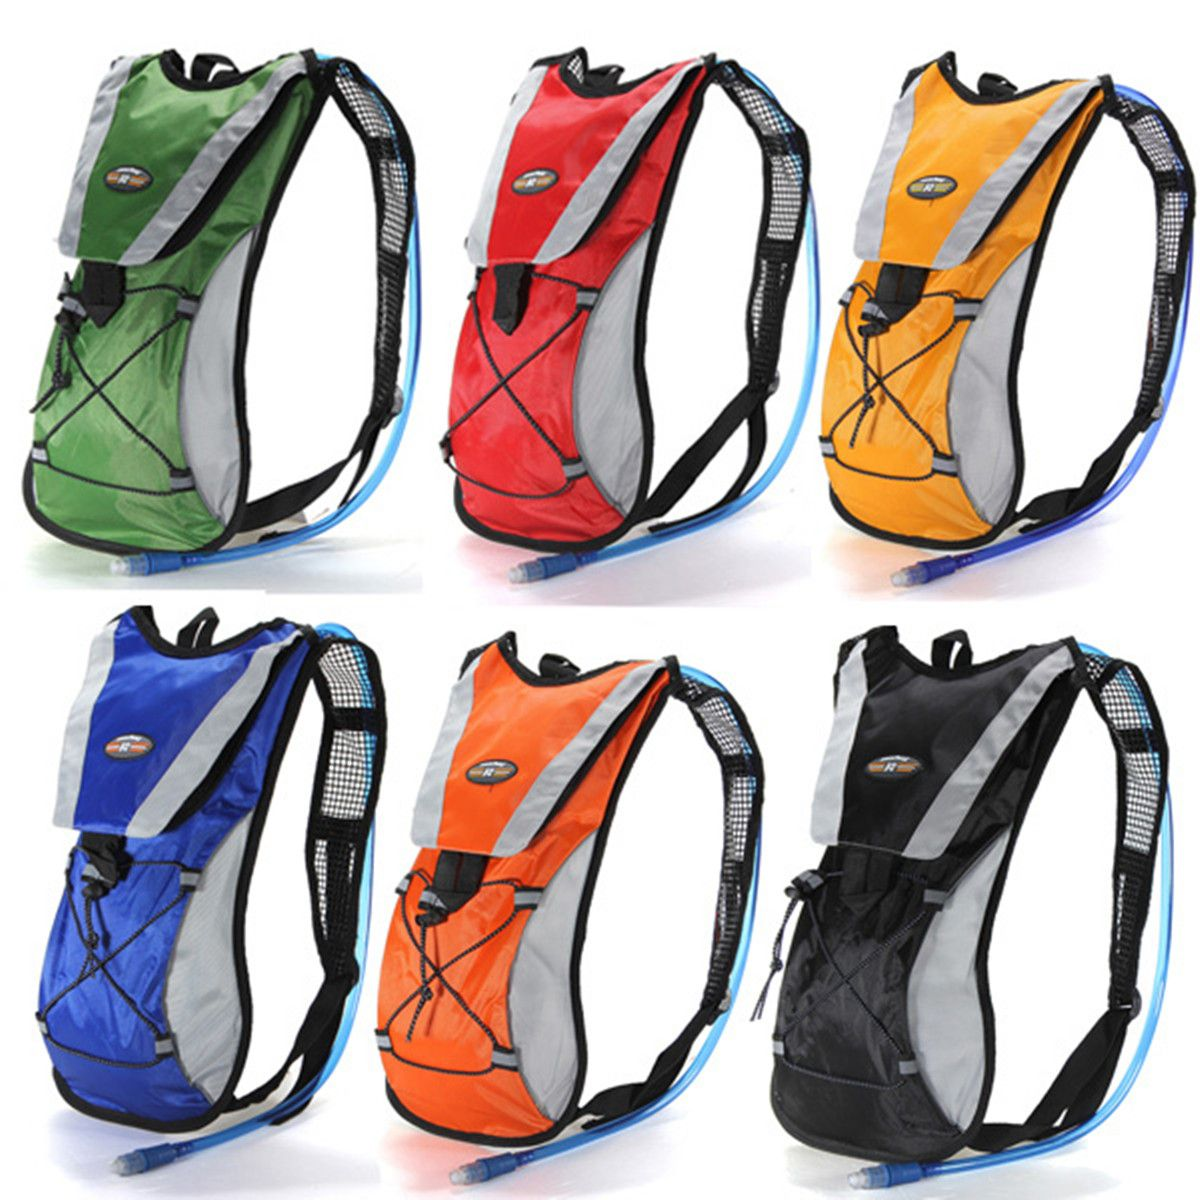 2L Hydration Pack Camelback Water Bladder Bag Reservoir Pouch Sport Camp Cycling